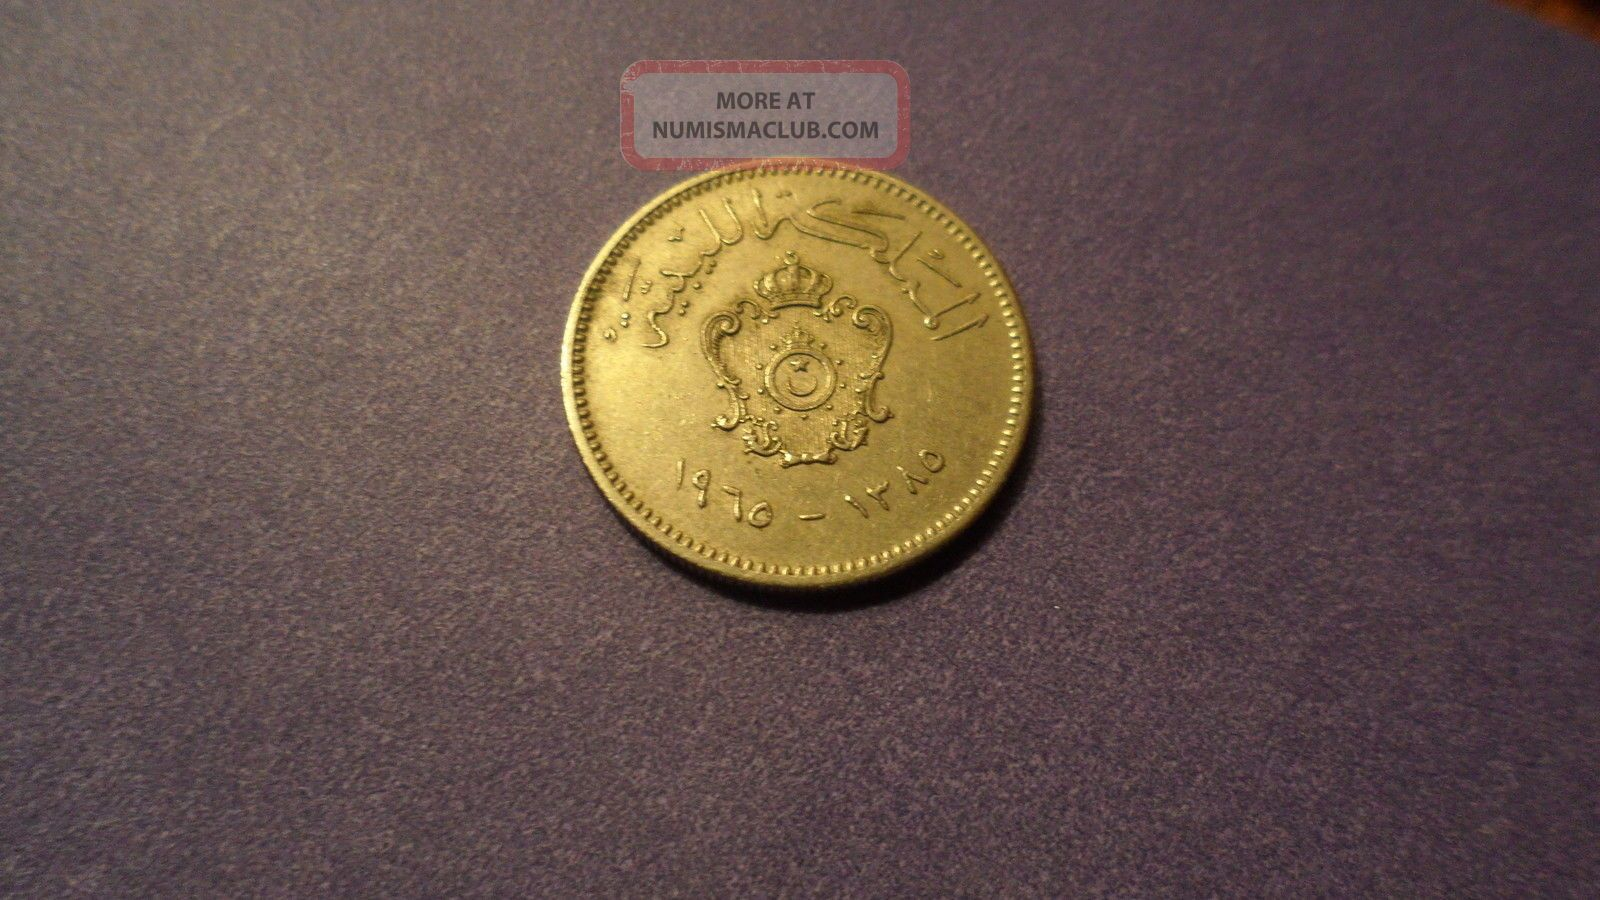 Libya 1965.  Ah1385,  Ten Milliemes.  One Year Type. Coins: World photo